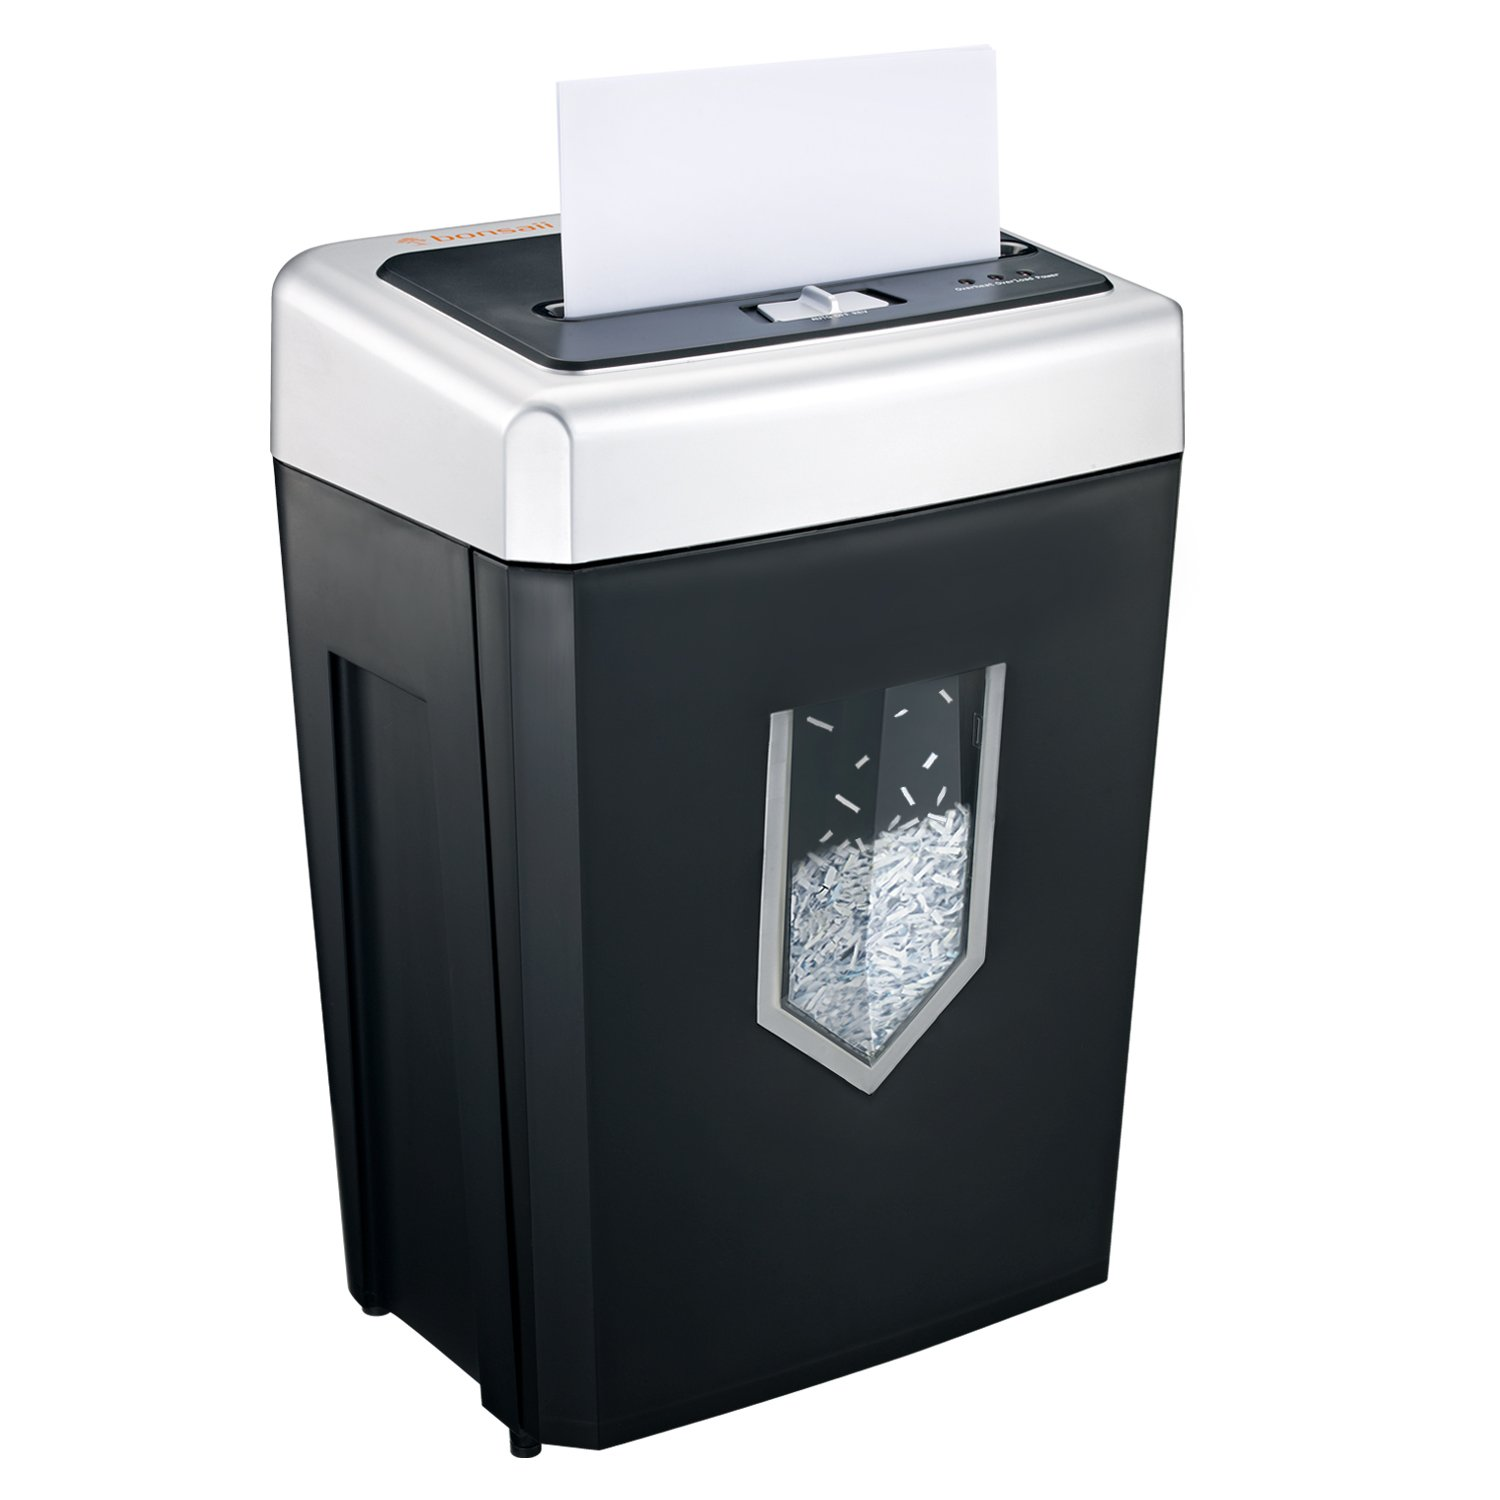 Bonsaii 14-Sheet Cross-Cut Heavy Duty Paper Shredder, 30-Minute Continuous Running Time, CD/Credit Card/Staples Shredders for Office, Quiet Shredding Machine with Jam Proof System (C169-B) by bonsaii